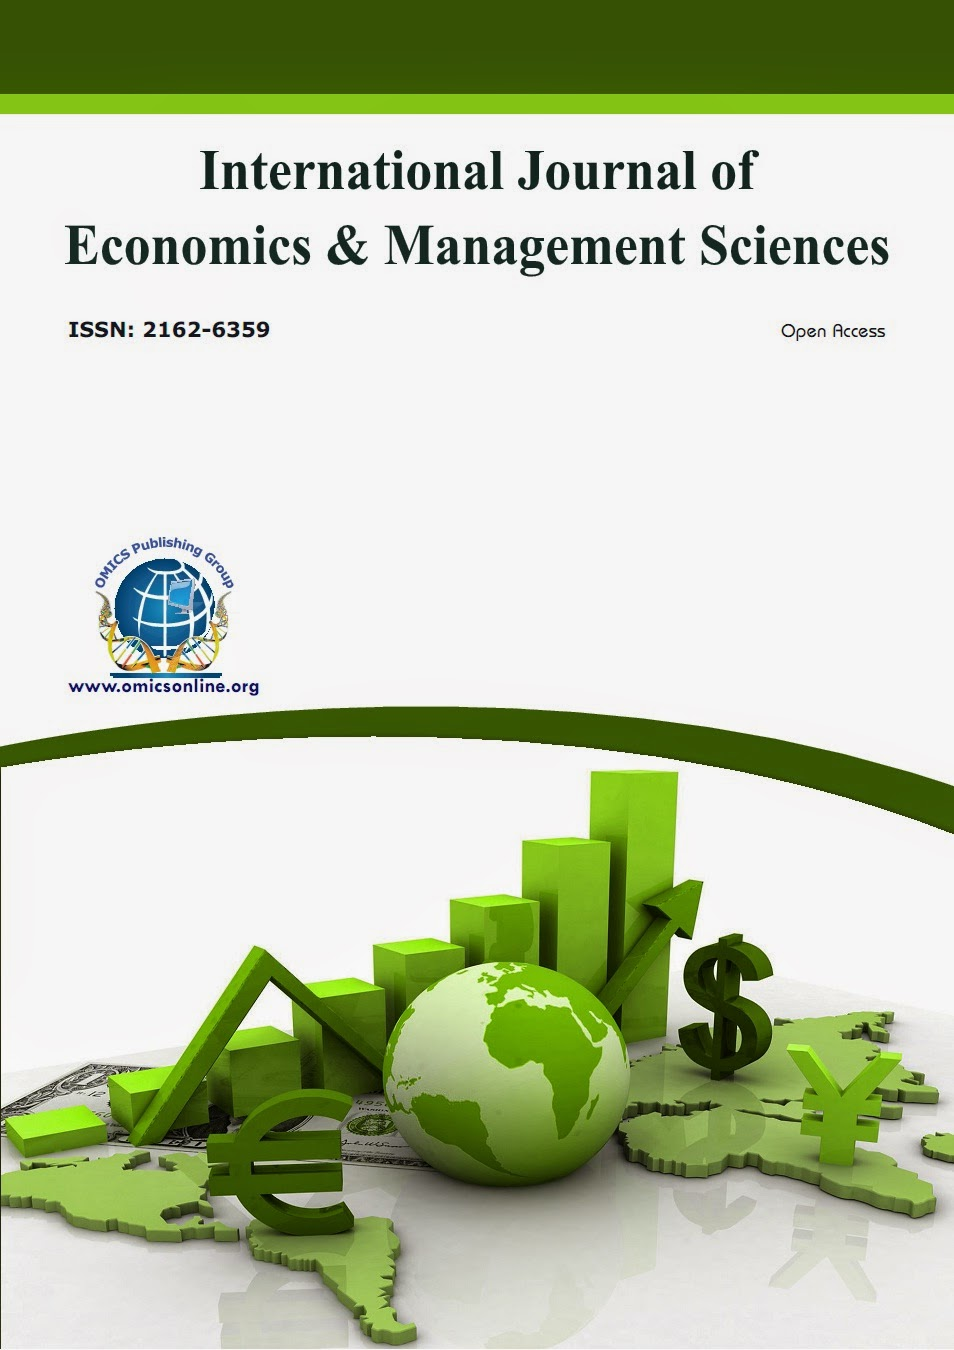 international journal of business and economics List of issues latest articles volume 25 2018 volume 24 2017 volume 23  2016 volume 22 2015 volume 21 2014 volume 20 2013 volume 19 2012.